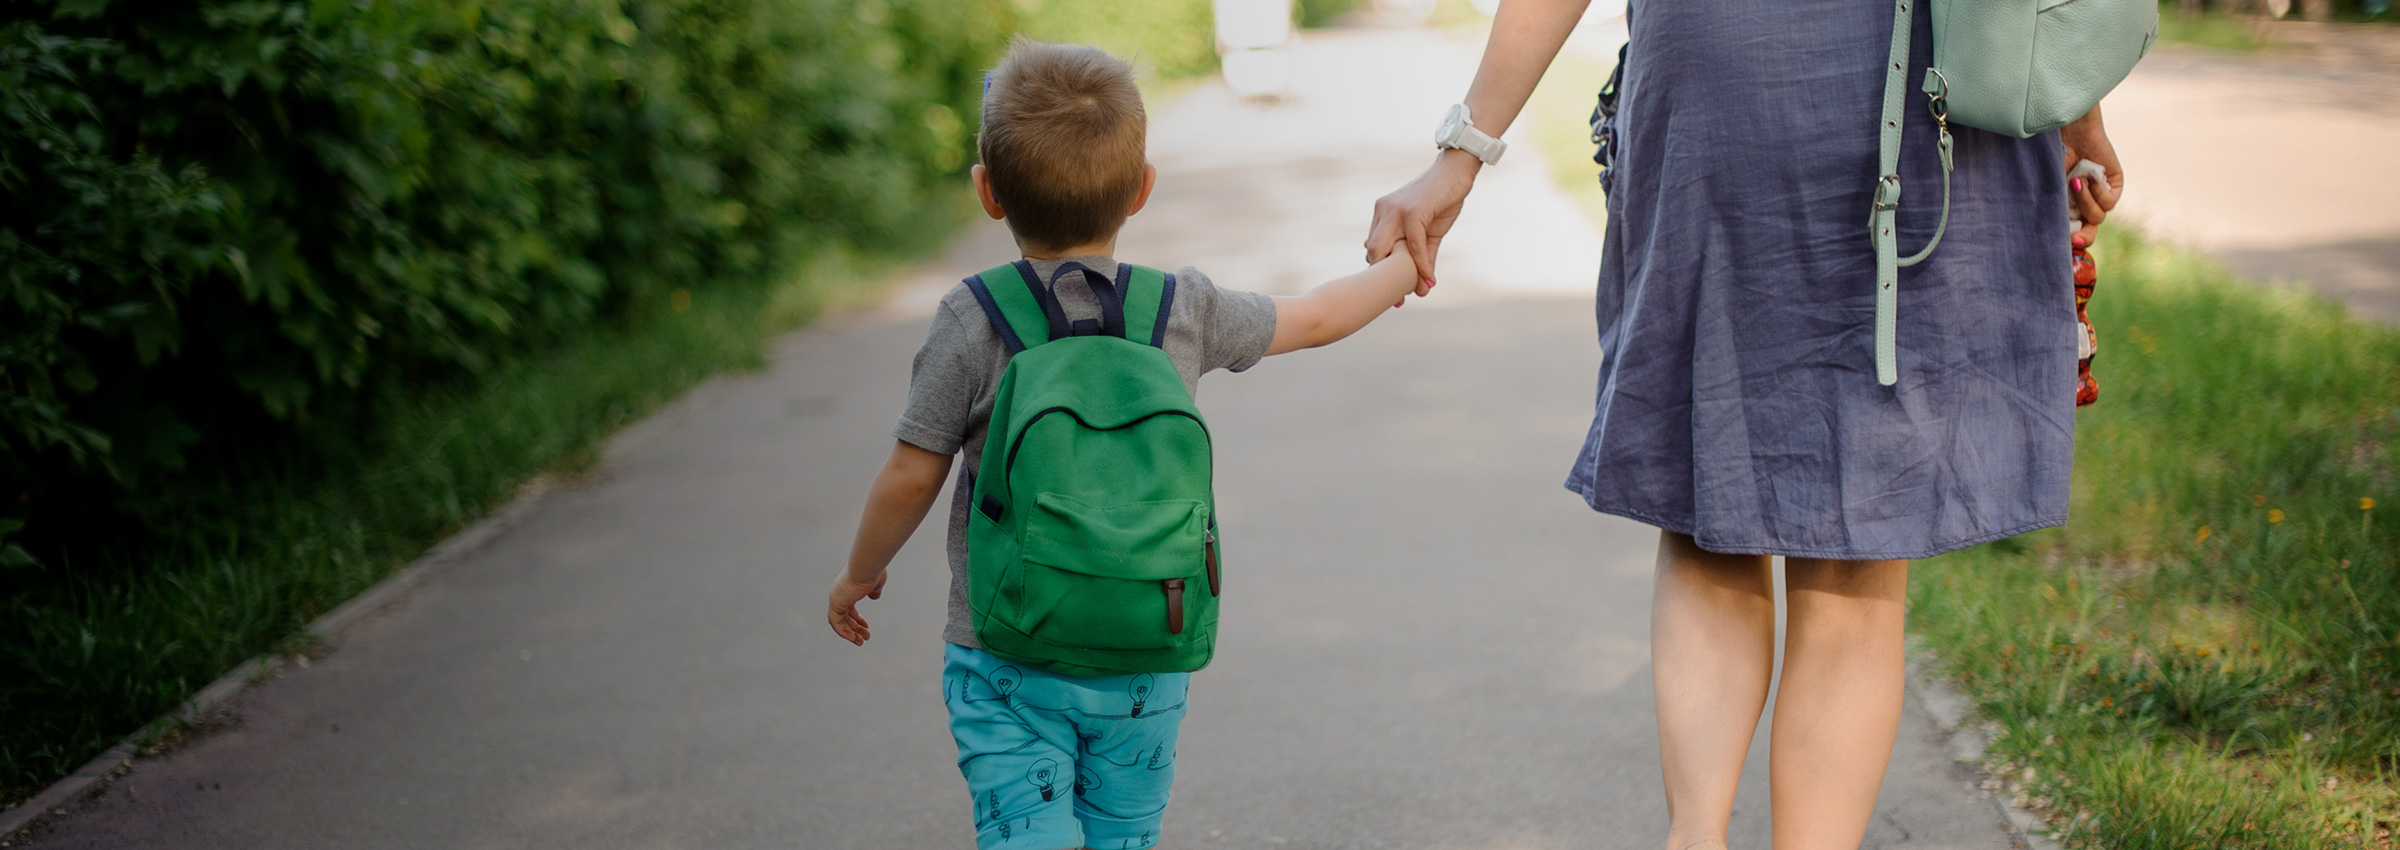 Young child with a green backpack holding hands with his mother